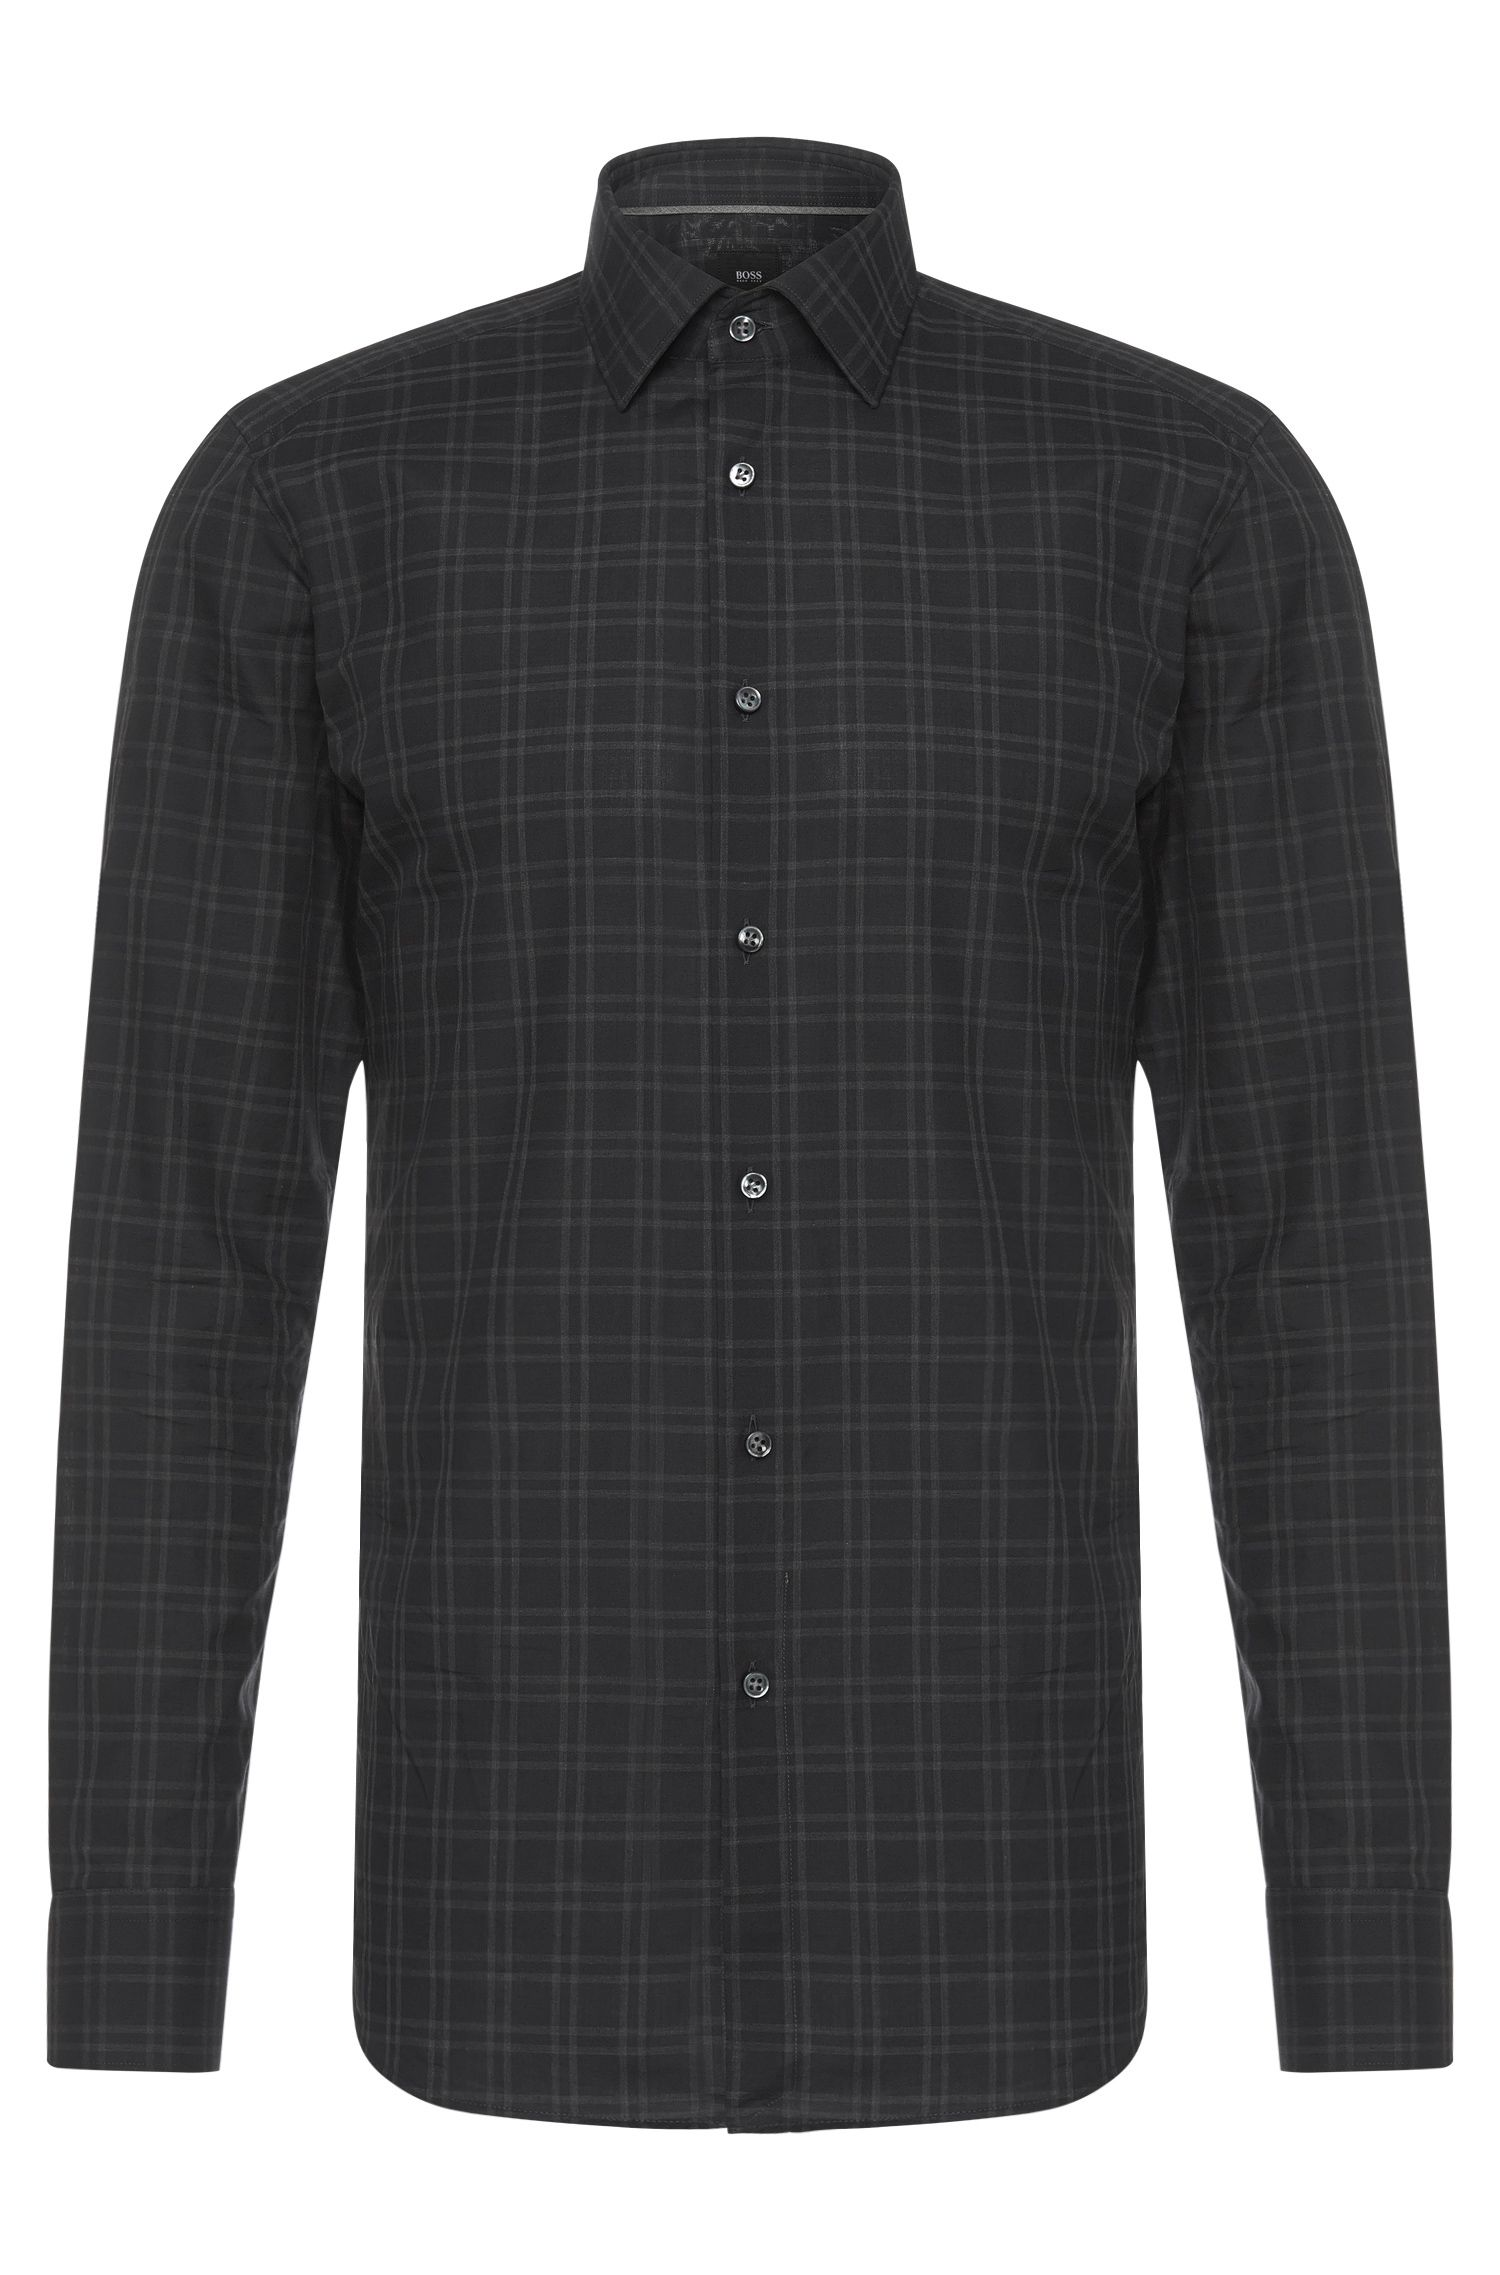 'T-Scott' | Slim Fit, Italian Cotton Checked Dress Shirt